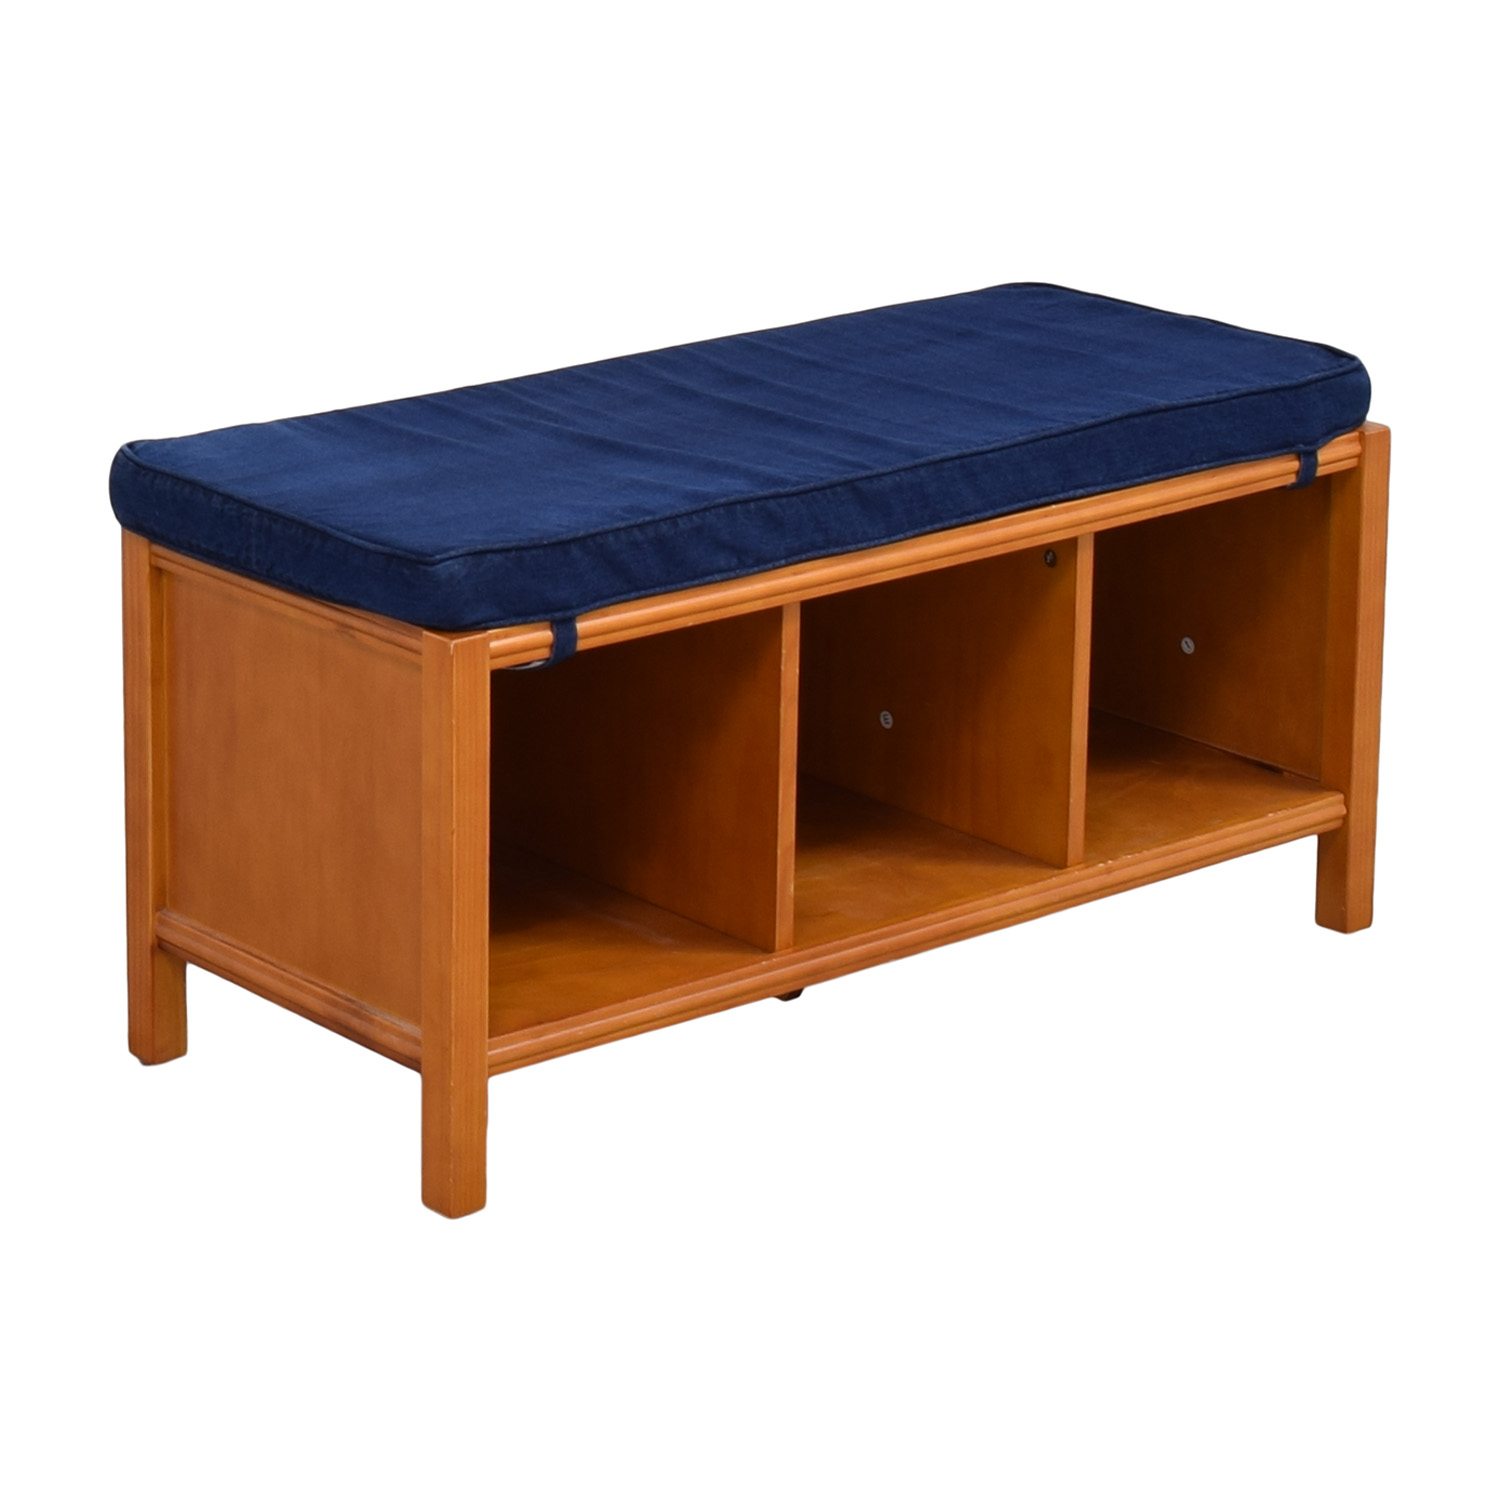 Land of Nod The Land of Nod Three Cube Bench with Cushion ma